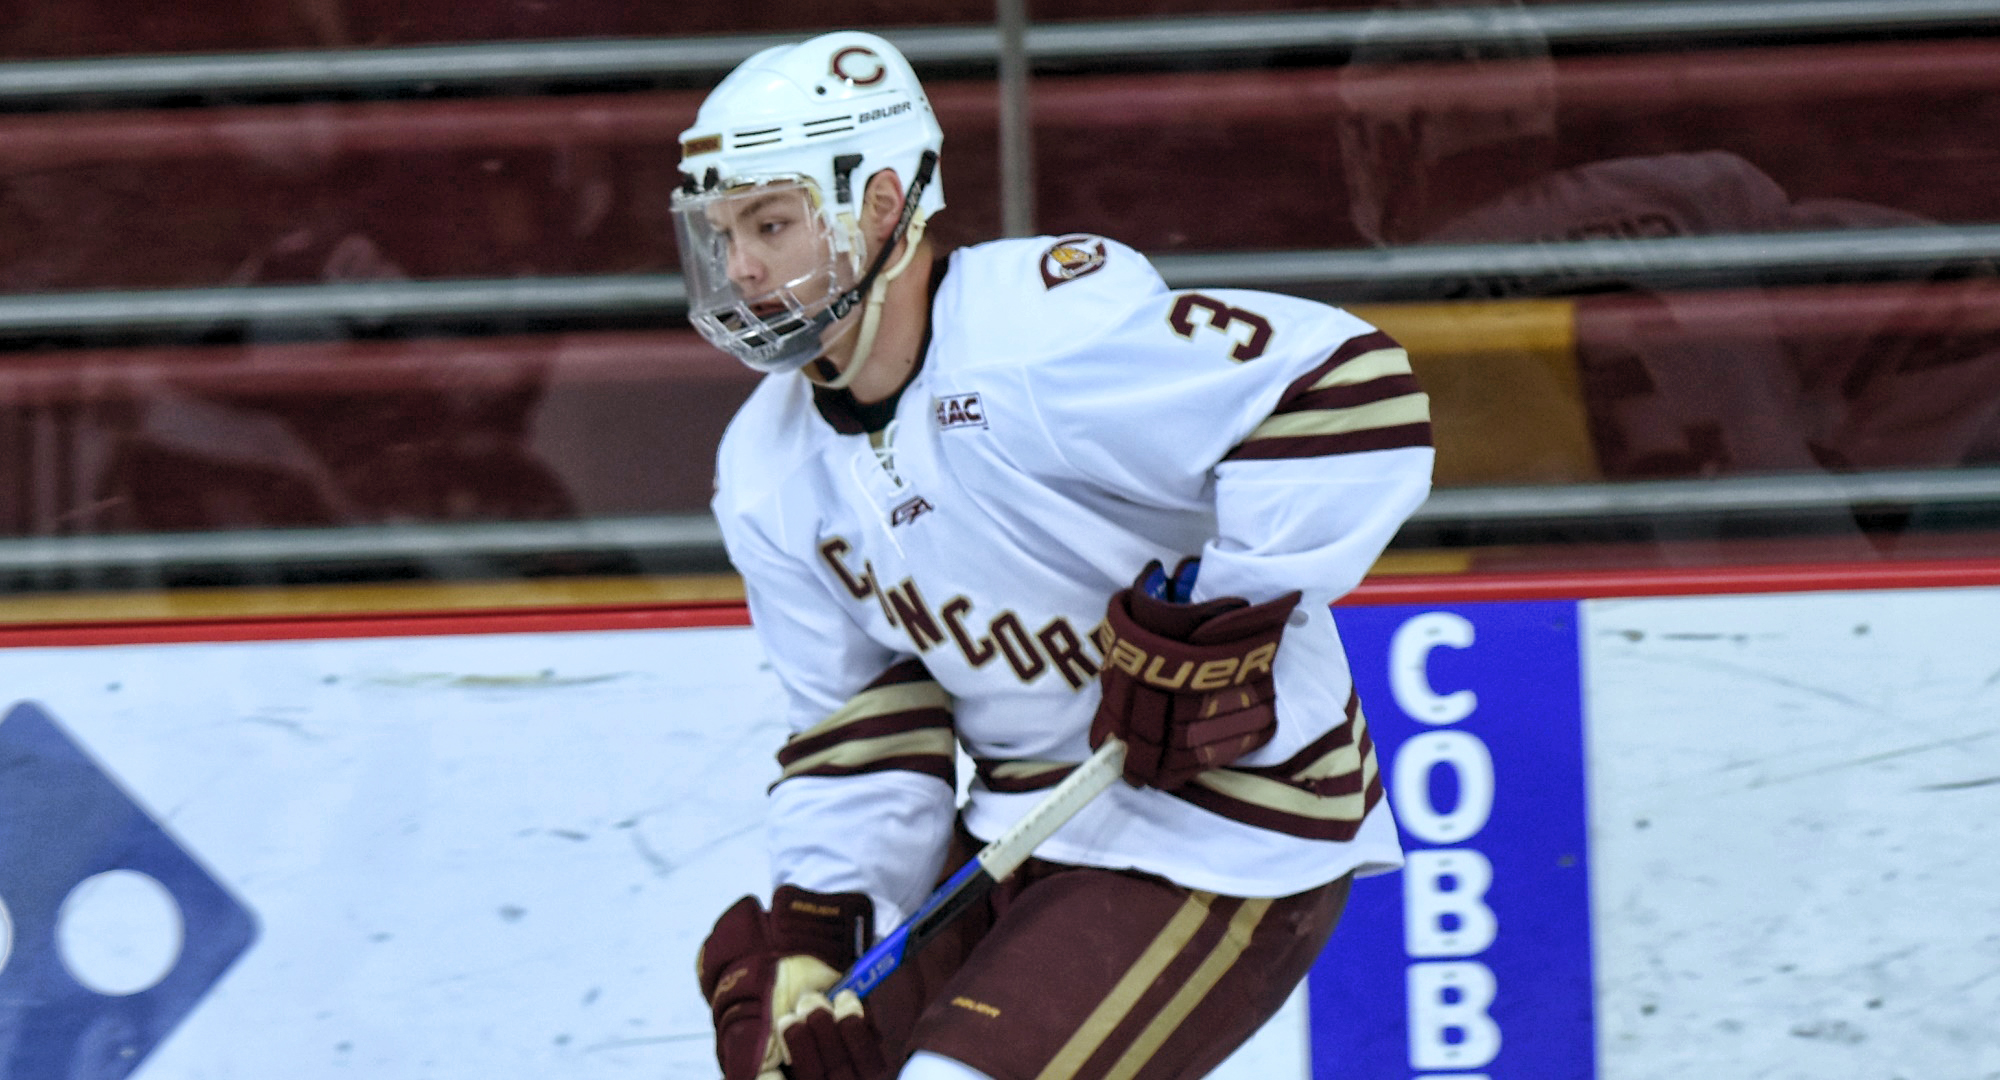 Kyle Siemers scored the only goal of the game in the Cobbers' 1-1 OT tie at Wis.-River Falls in the series finale.